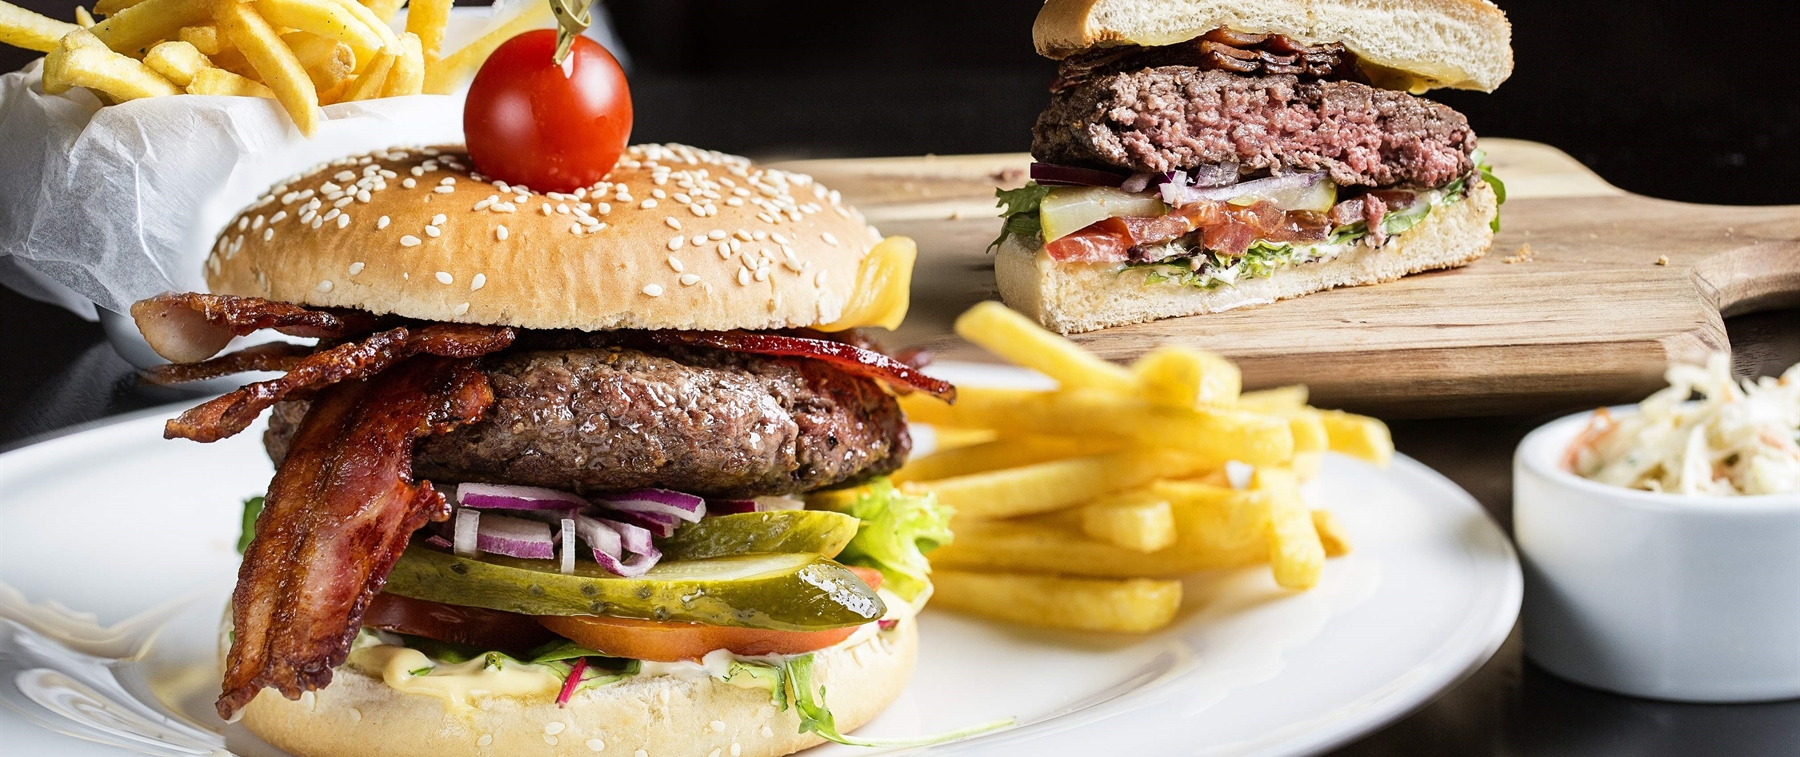 Homemade beef burger with fries